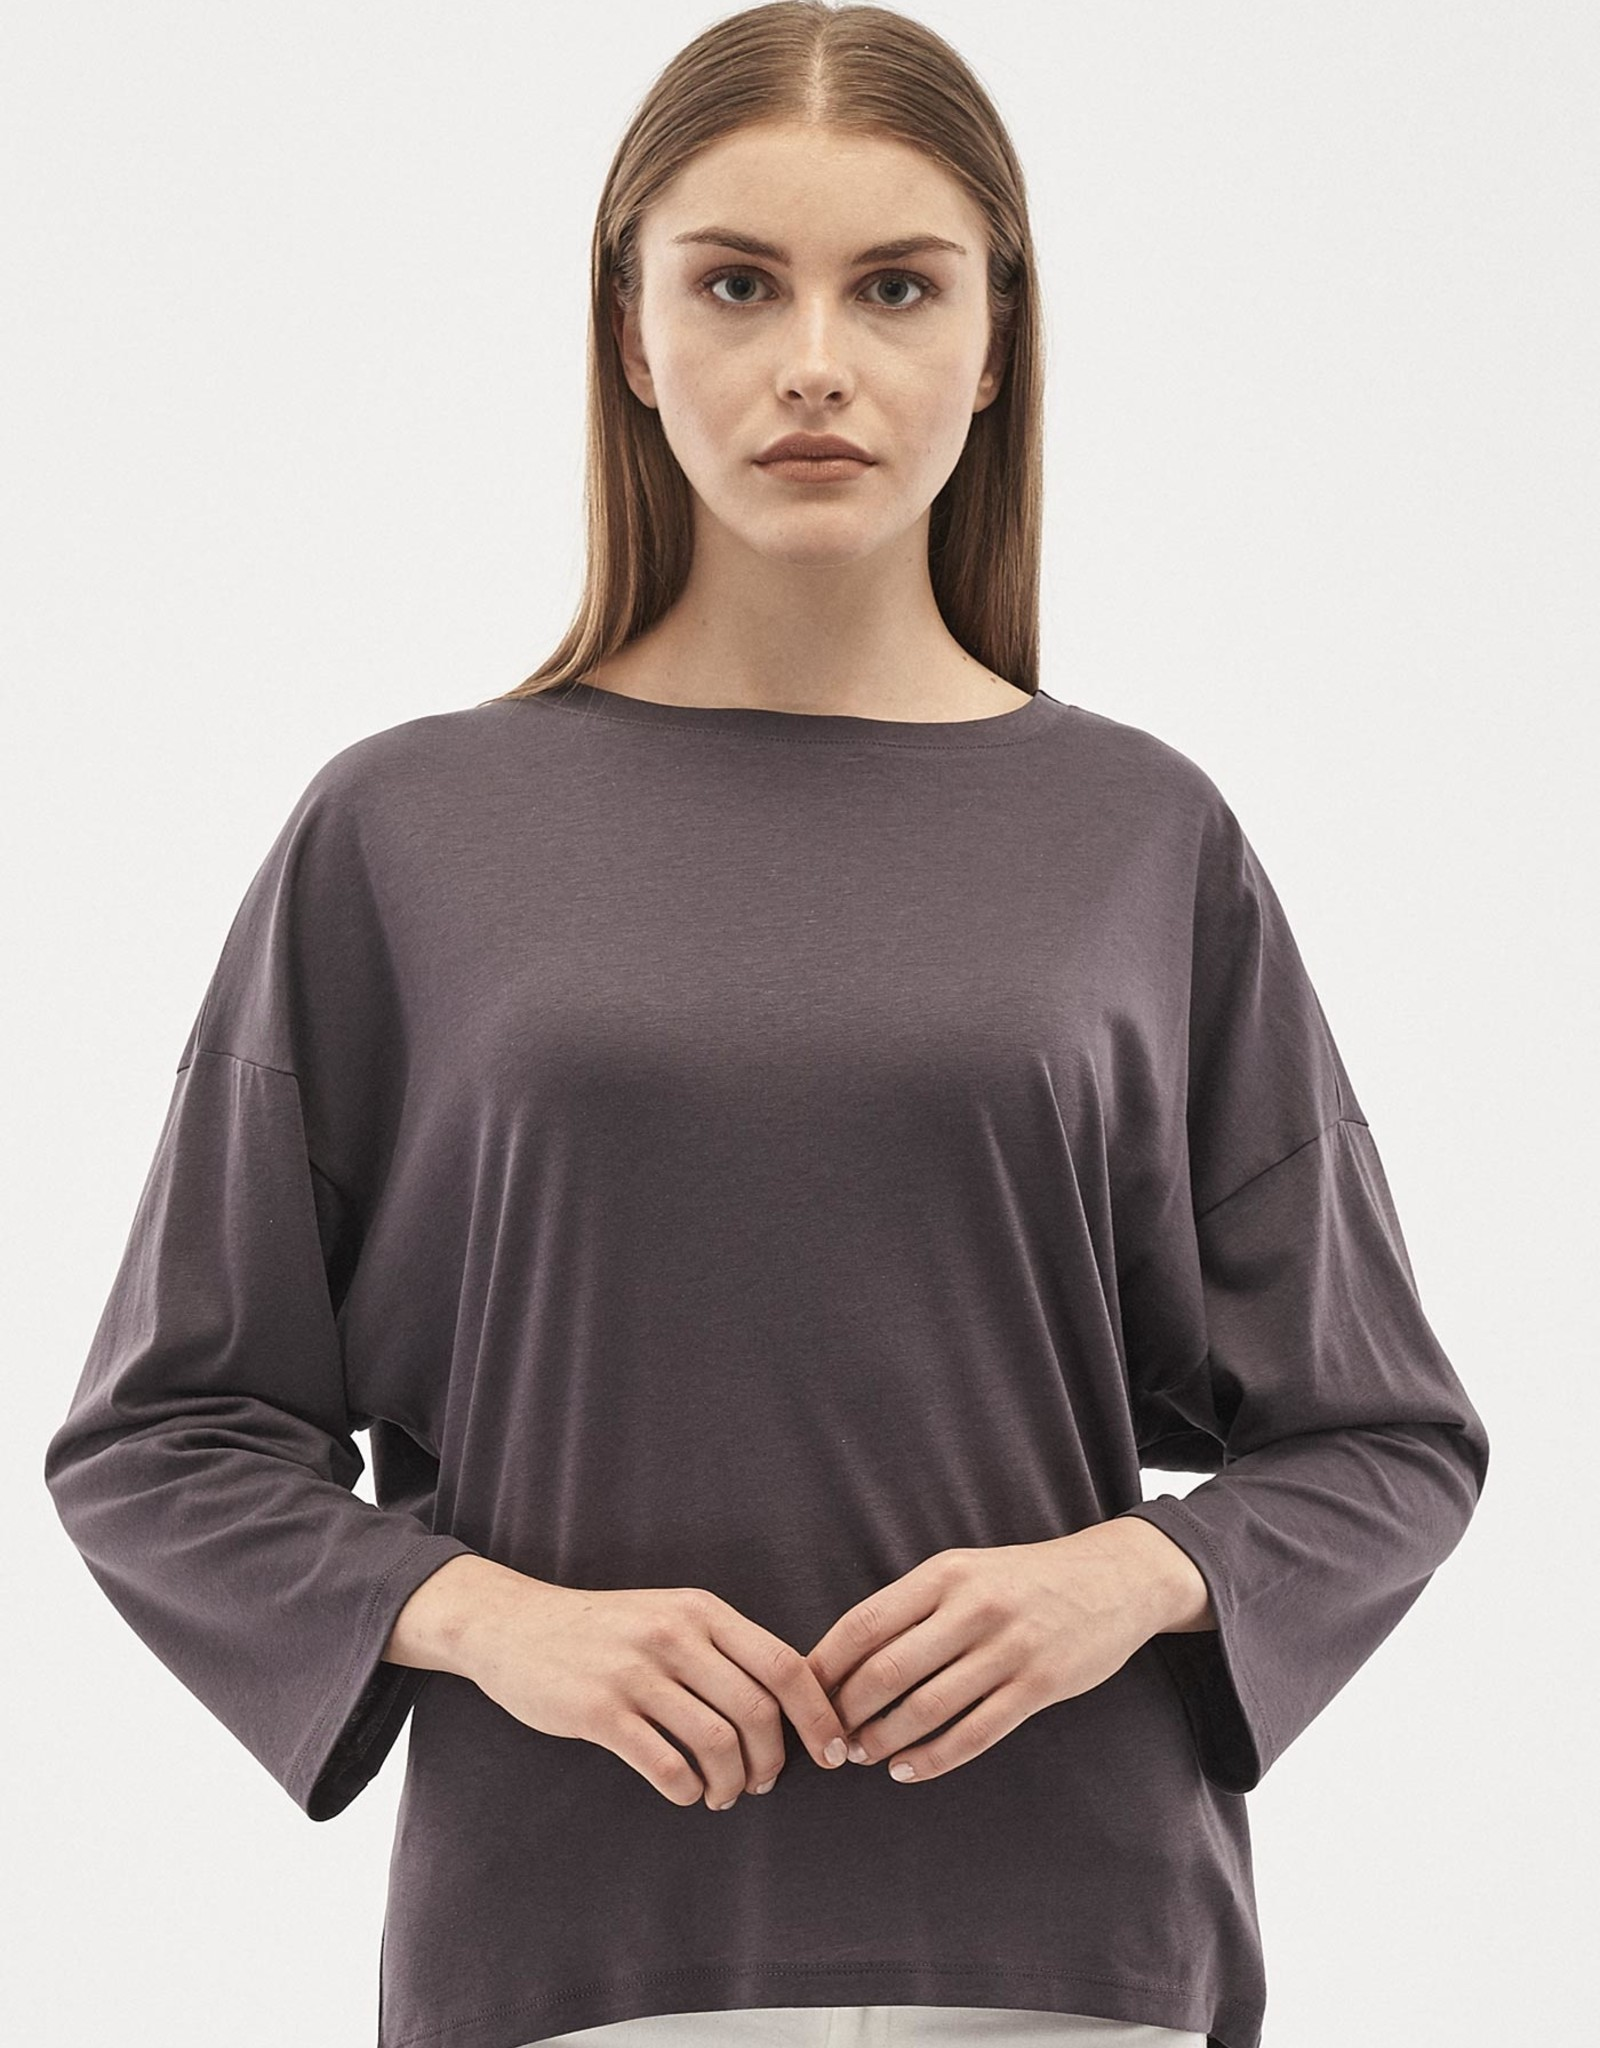 Organication BLOUSE SHIRT WIJDE MOUW ANTHRACITE